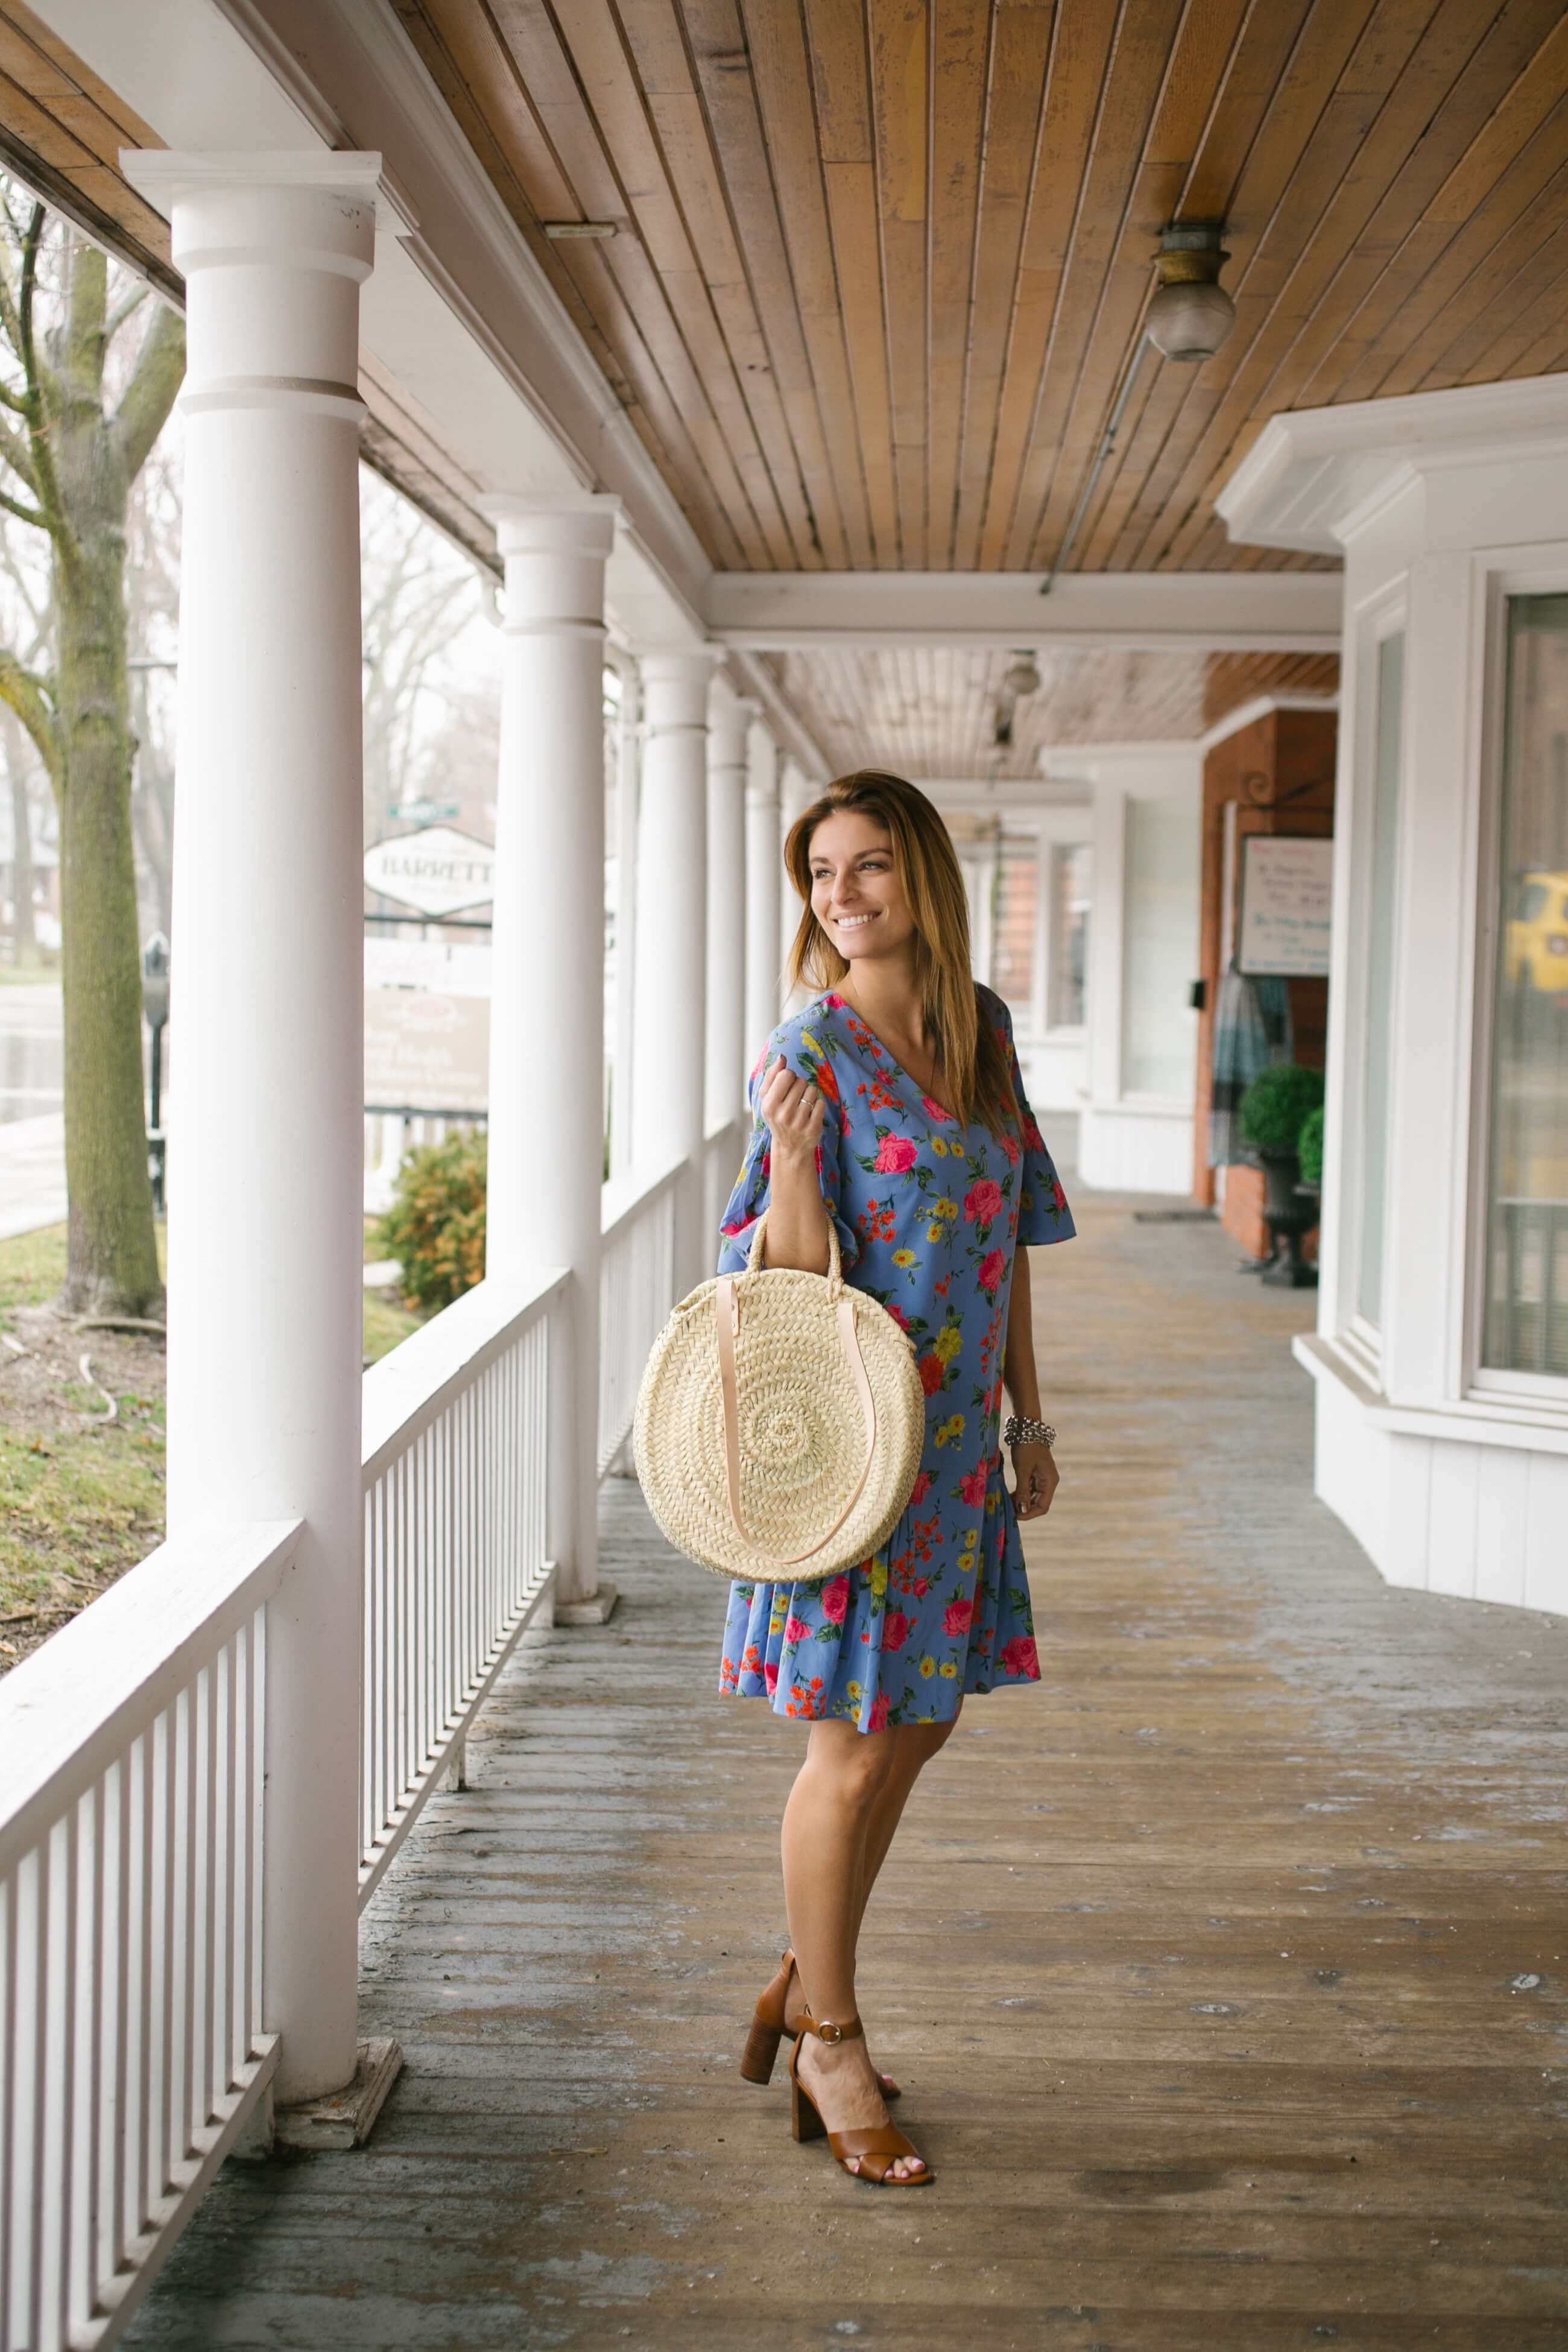 Ann Taylor Floral Flounce Shift Dress, Ann Taylor Liya Leather Block Heel Sandals, round straw bag; Ann Taylor Summer Style; Mandy Furnis sparkleshinylove